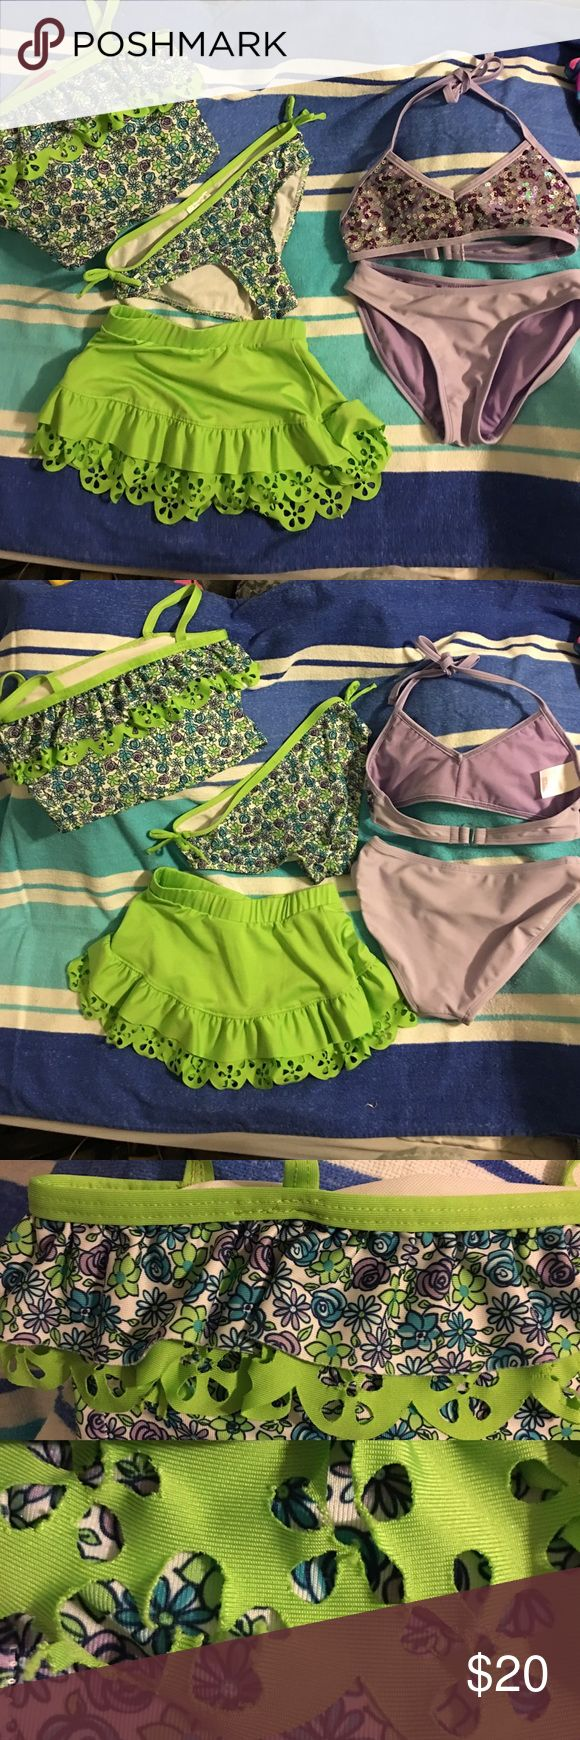 Girls 2 piece swim suit & skirt coverup lot 6-6X Suit #1 lavender Xhilaration bikini with purple and silver sequins. Ties behind neck, plastic hook in back. Includes matching bottom. In very good condition. #2 pull on style tankini in white, lime, blue, and lavender flower design with spaghetti straps by Penny M. Matching bottom with decorative bows on sides and lime green skirt coverup with flower cut outs on ruffles. Some cutouts on the top are torn. It is not noticeable and mostly covered…